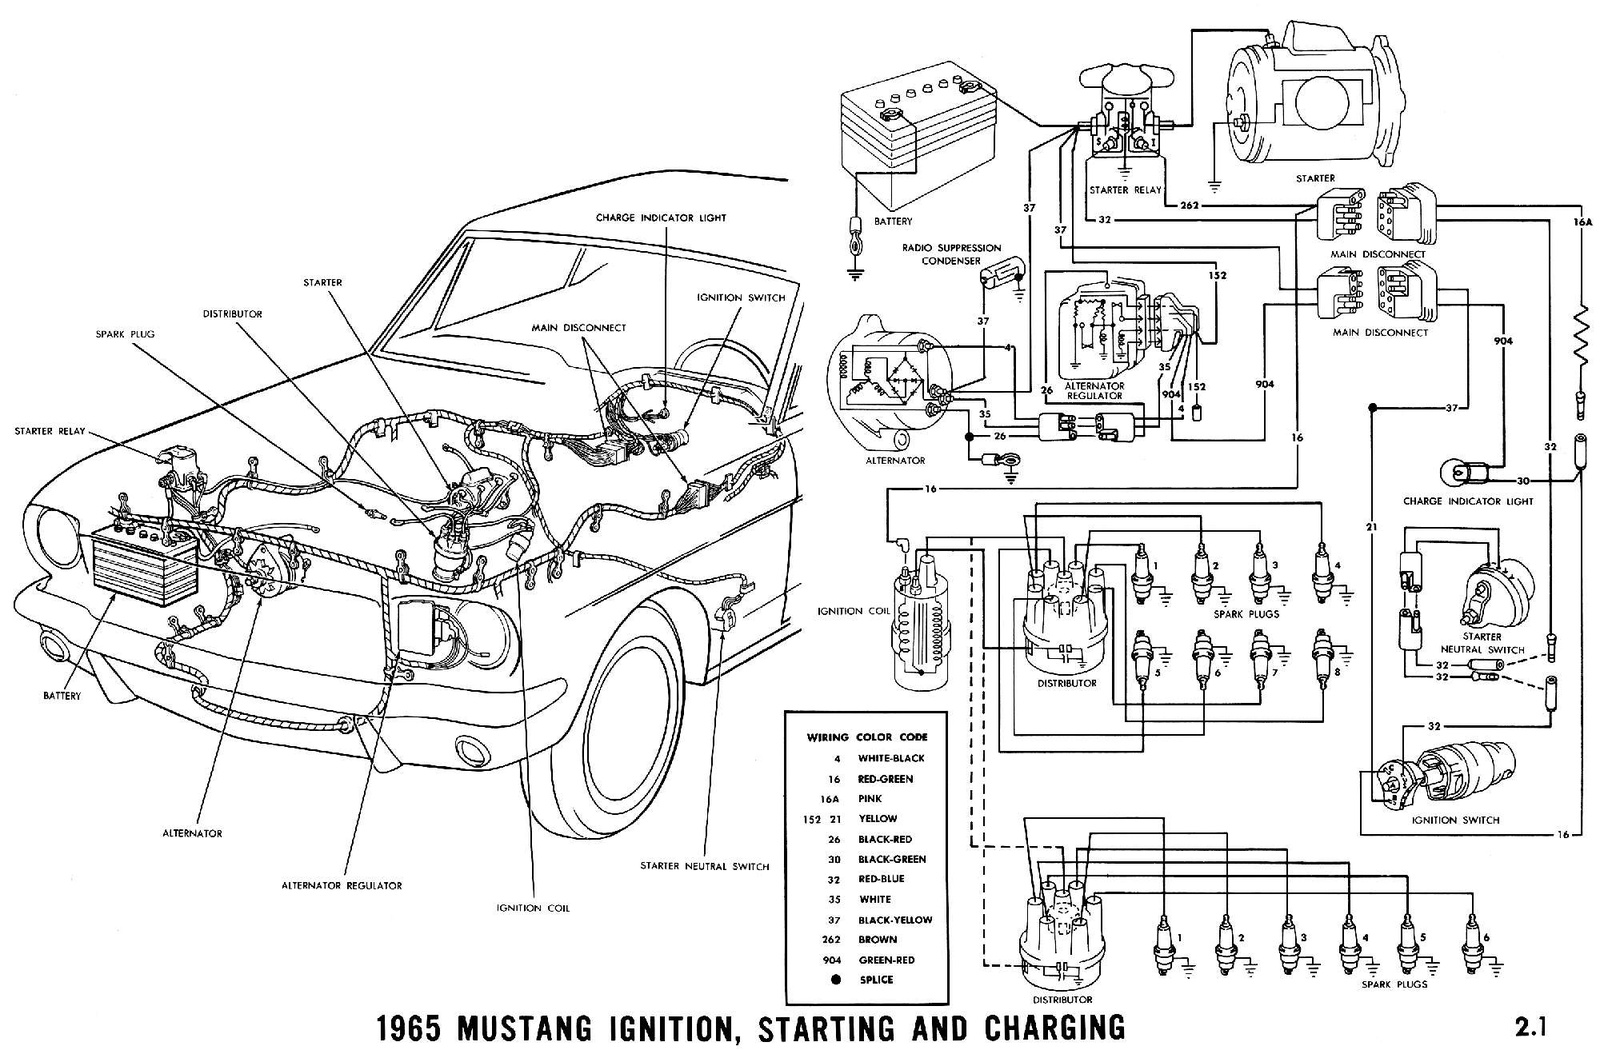 65 mustang engine wiring free vehicle wiring diagrams u2022 rh  narfiyanstudio com 1973 Mustang Wiring Harness 1965 Ford Mustang Wiring  Harness